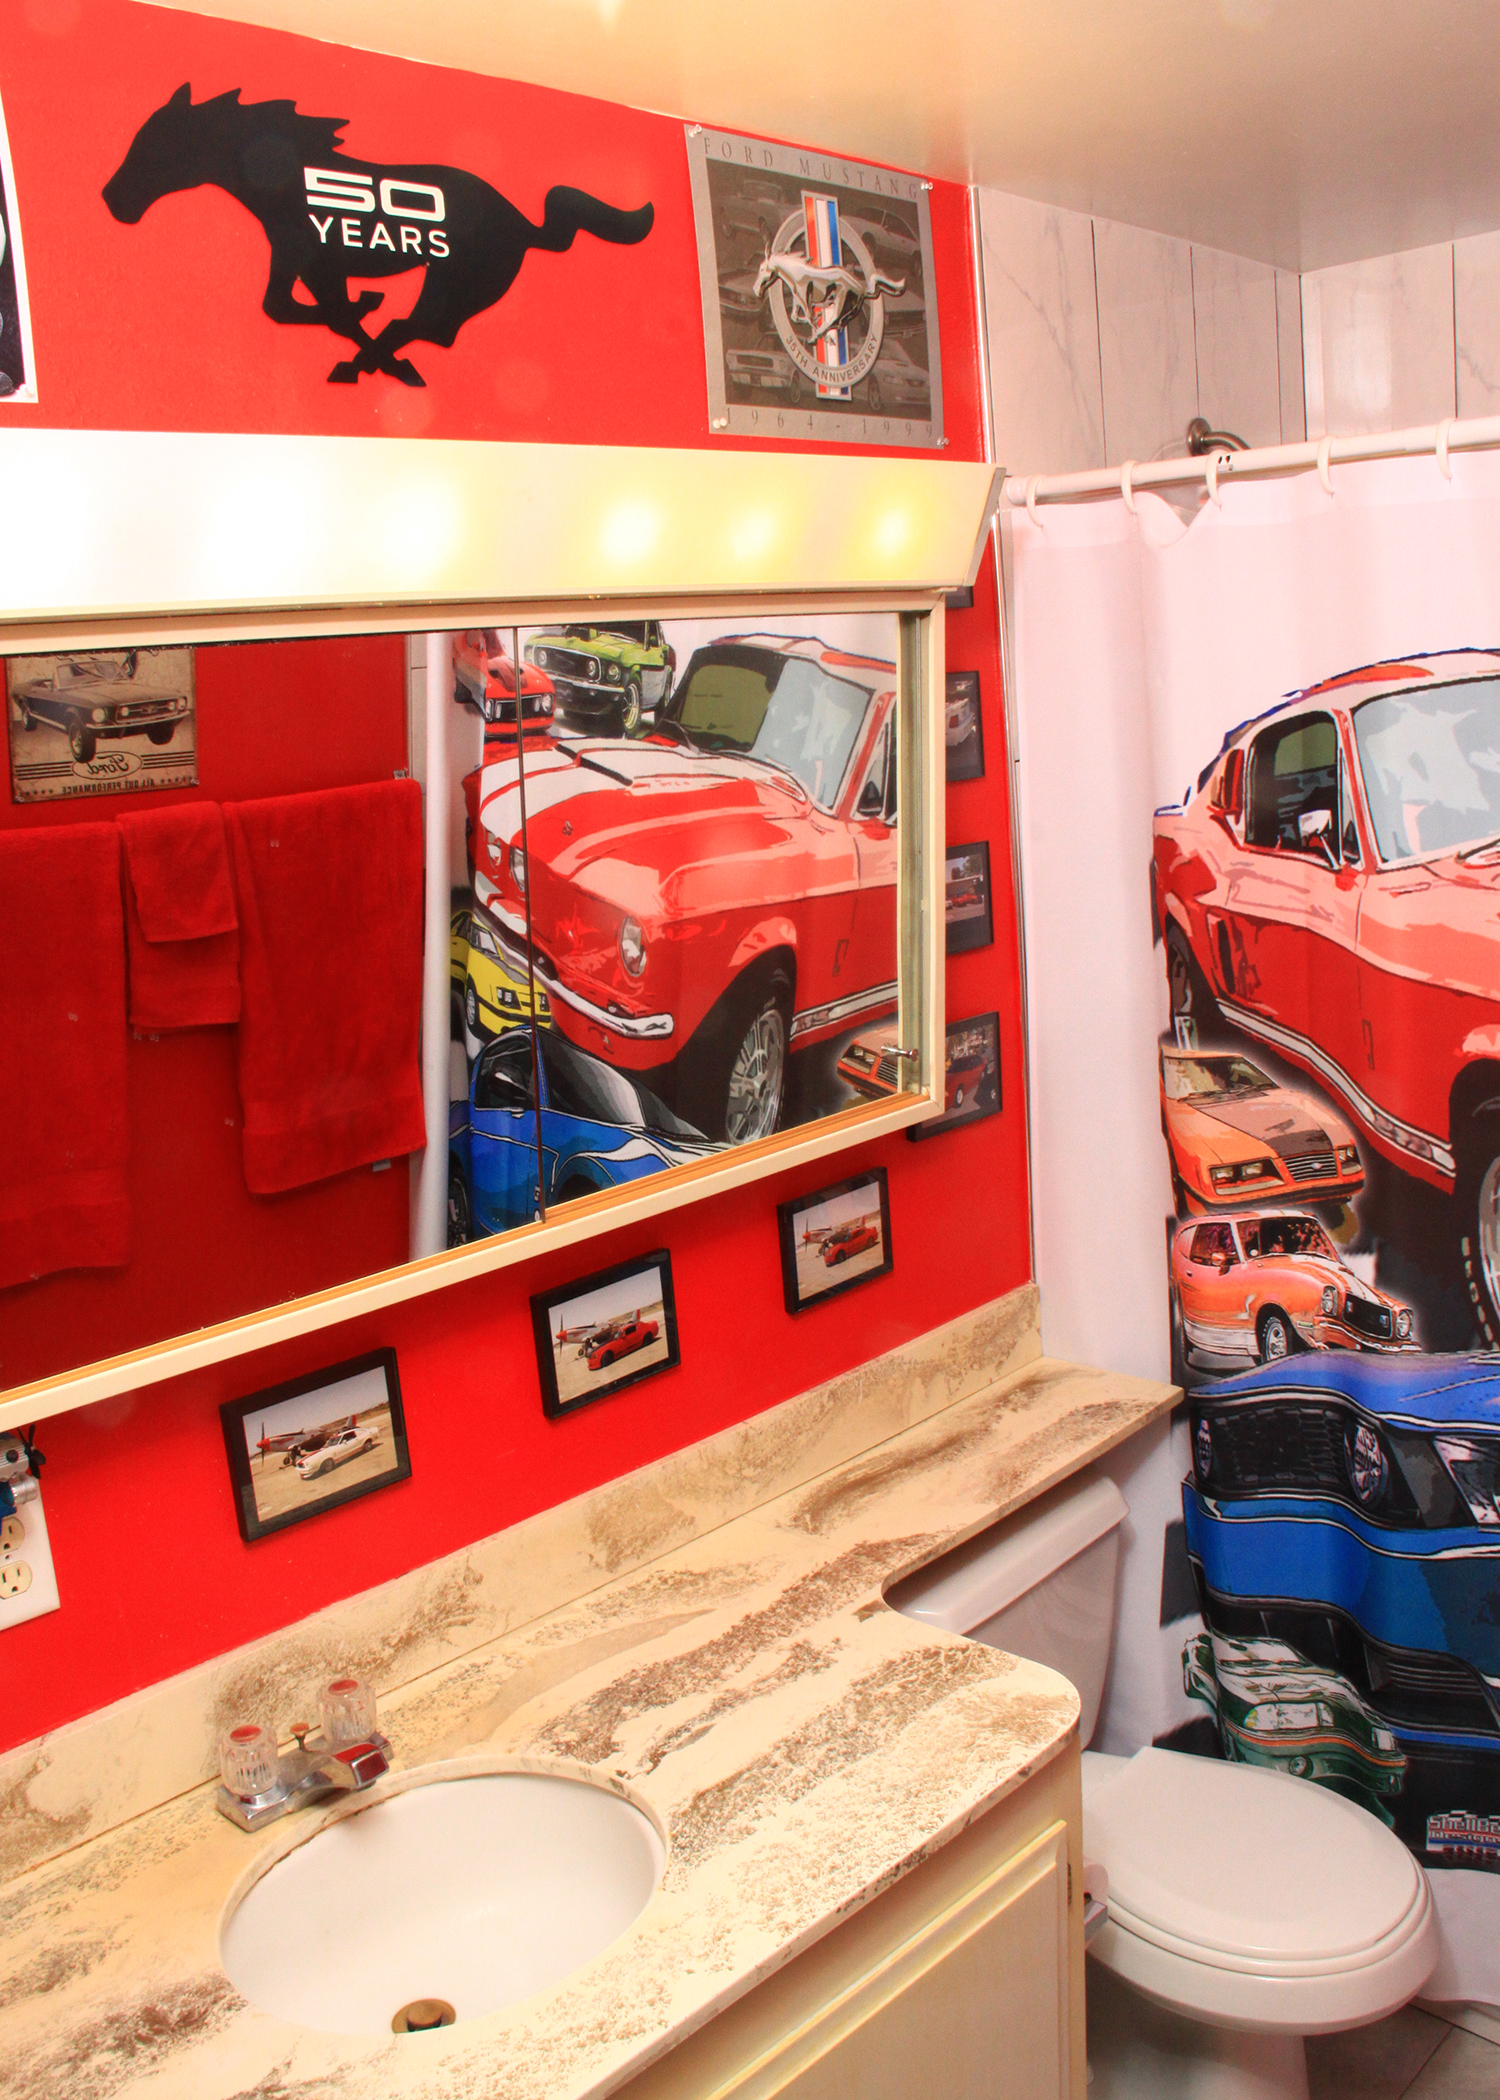 How's this for a Mustang tribute? Taylor and her dad turned the main upstairs bathroom of their home into a Mustang museum.